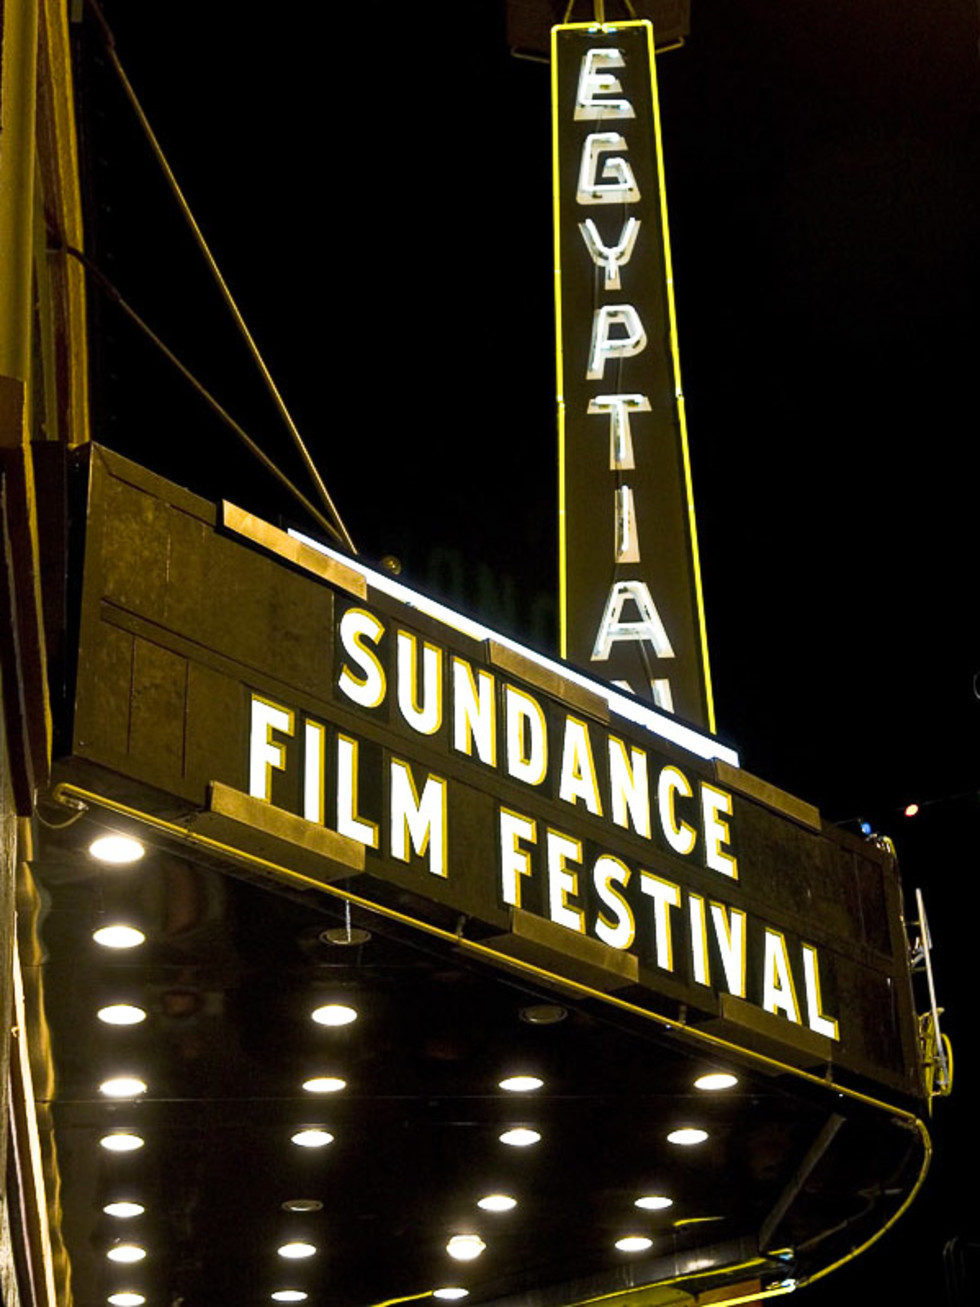 News_Sundance Film Festival_jan 10